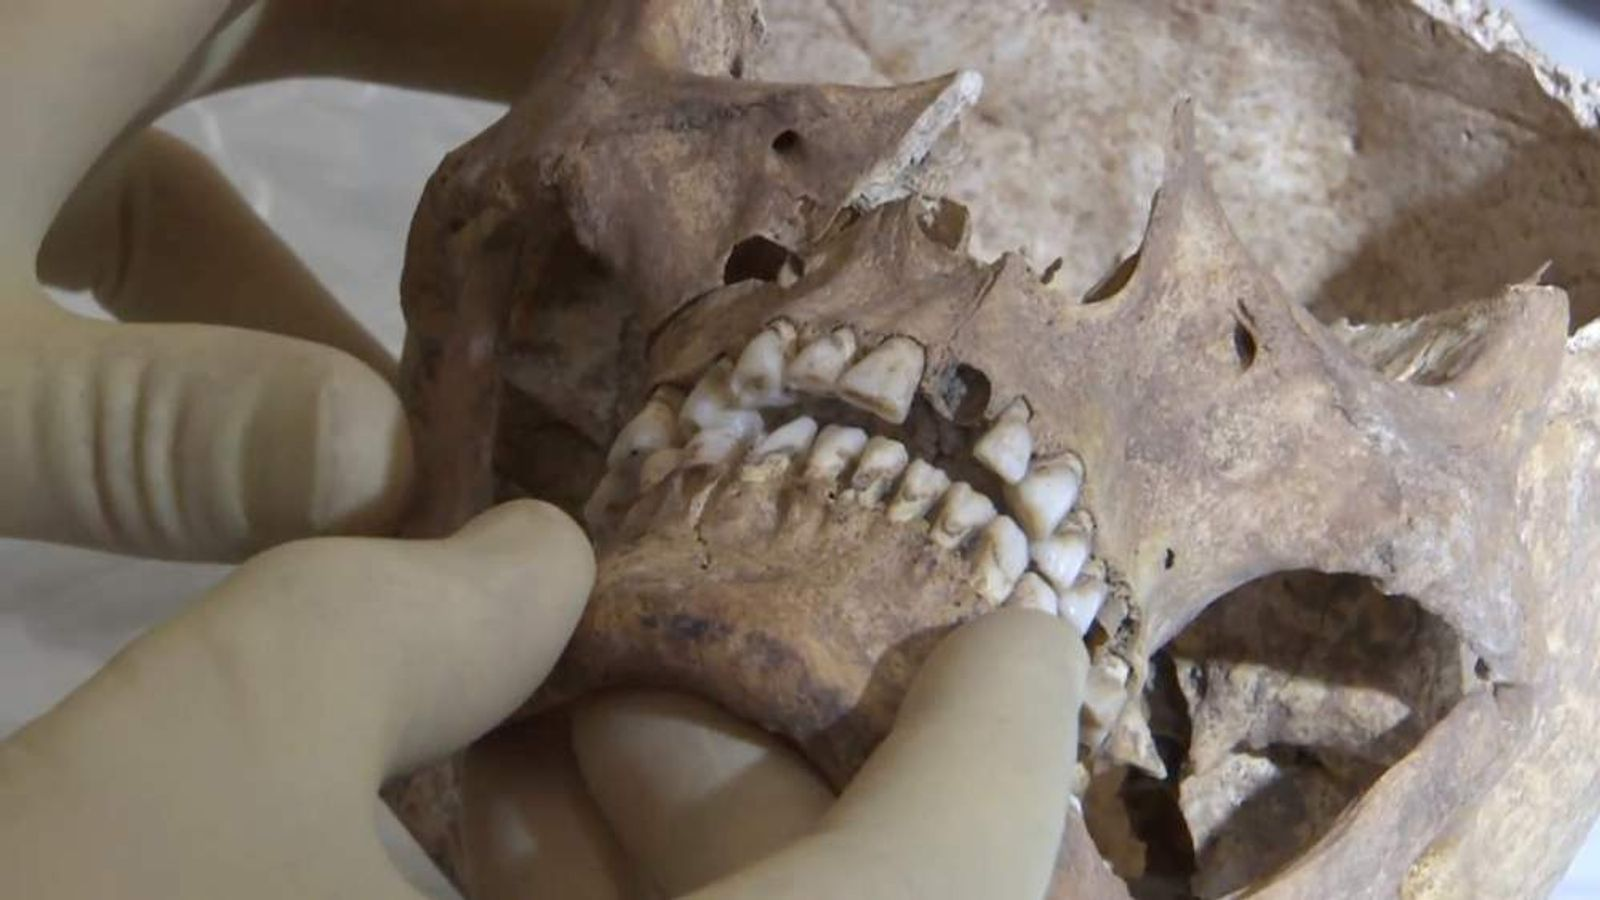 King Richard III suffered a killer blow to the skull. Pic: University of Leicester